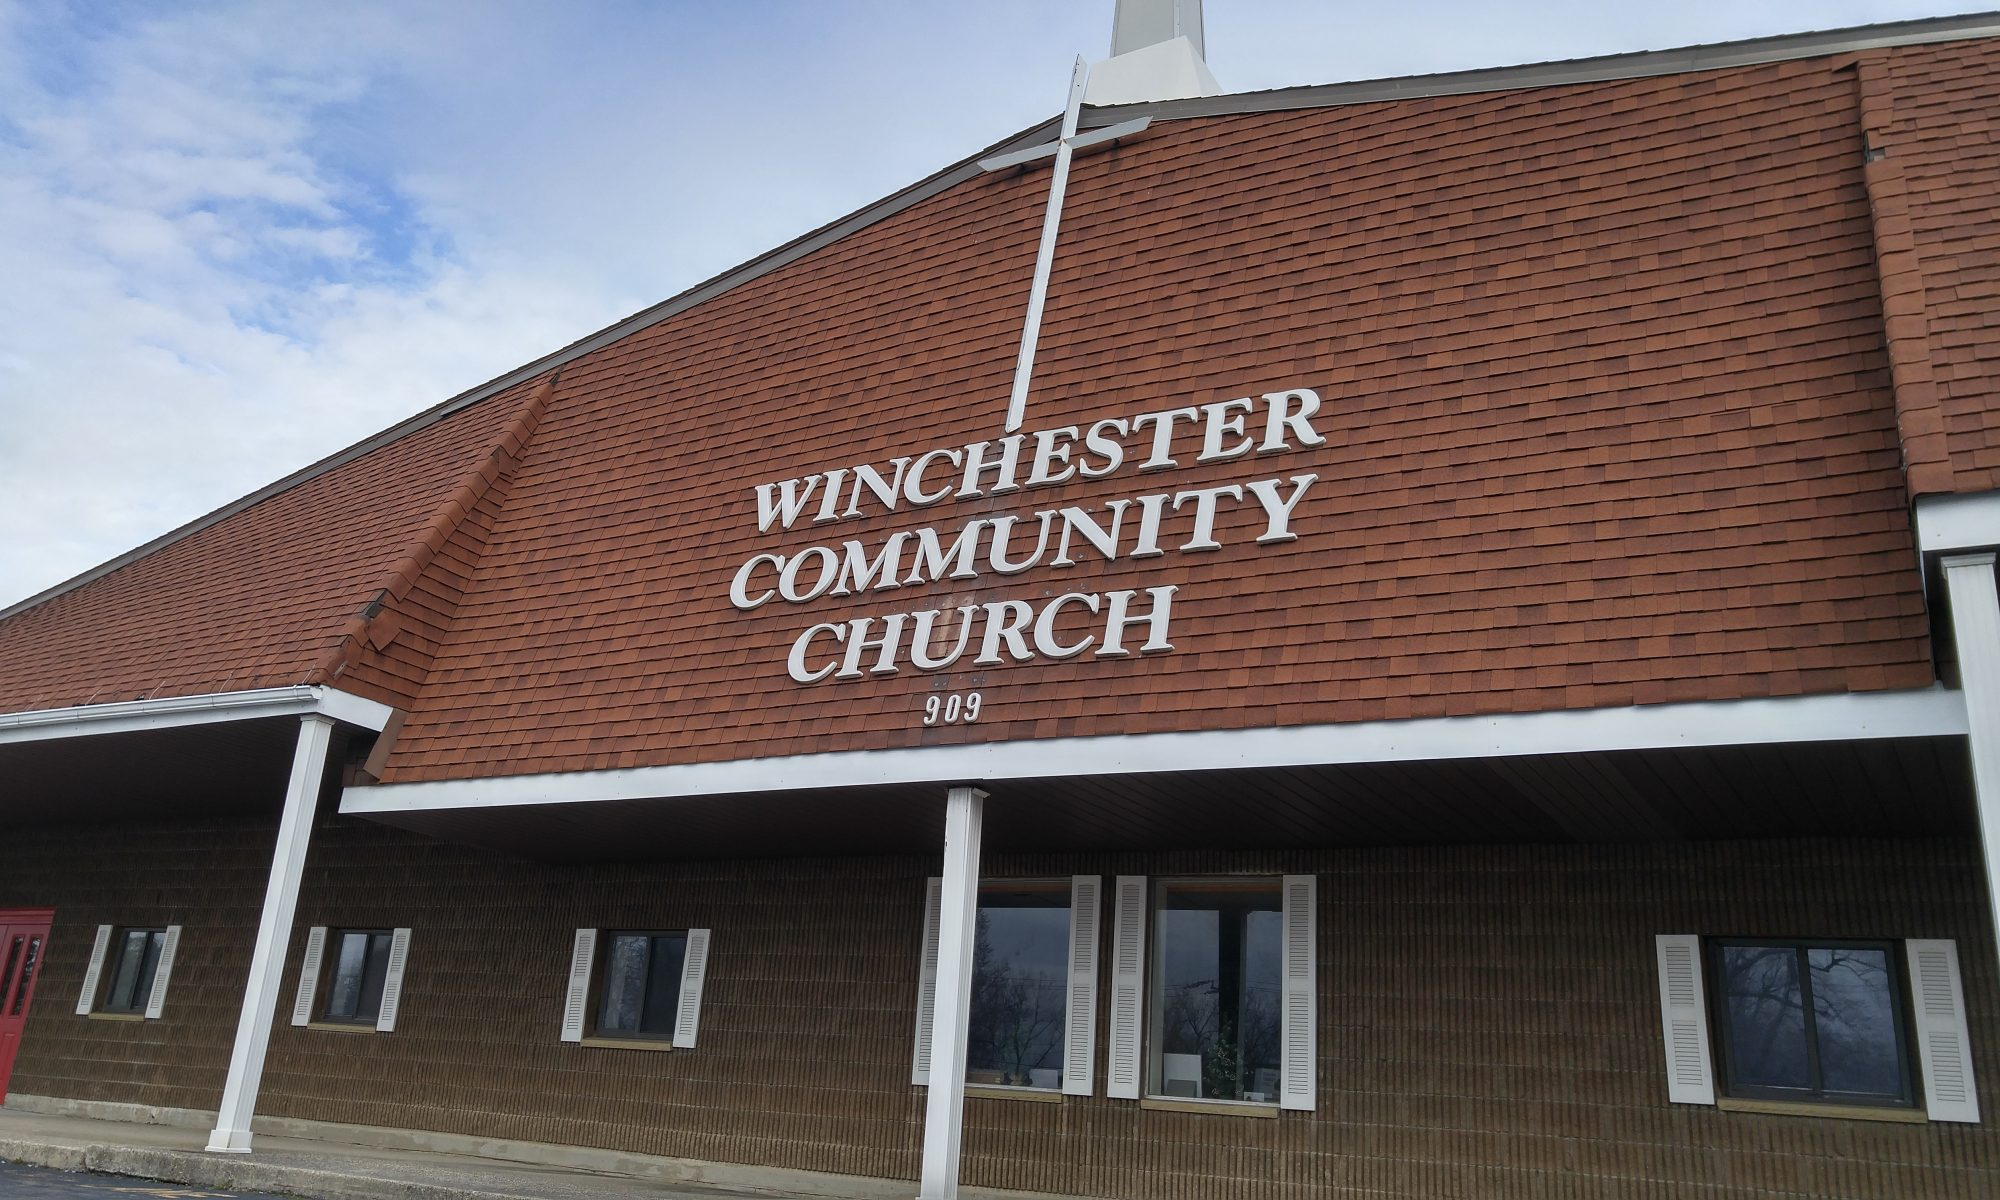 Winchester Community Church